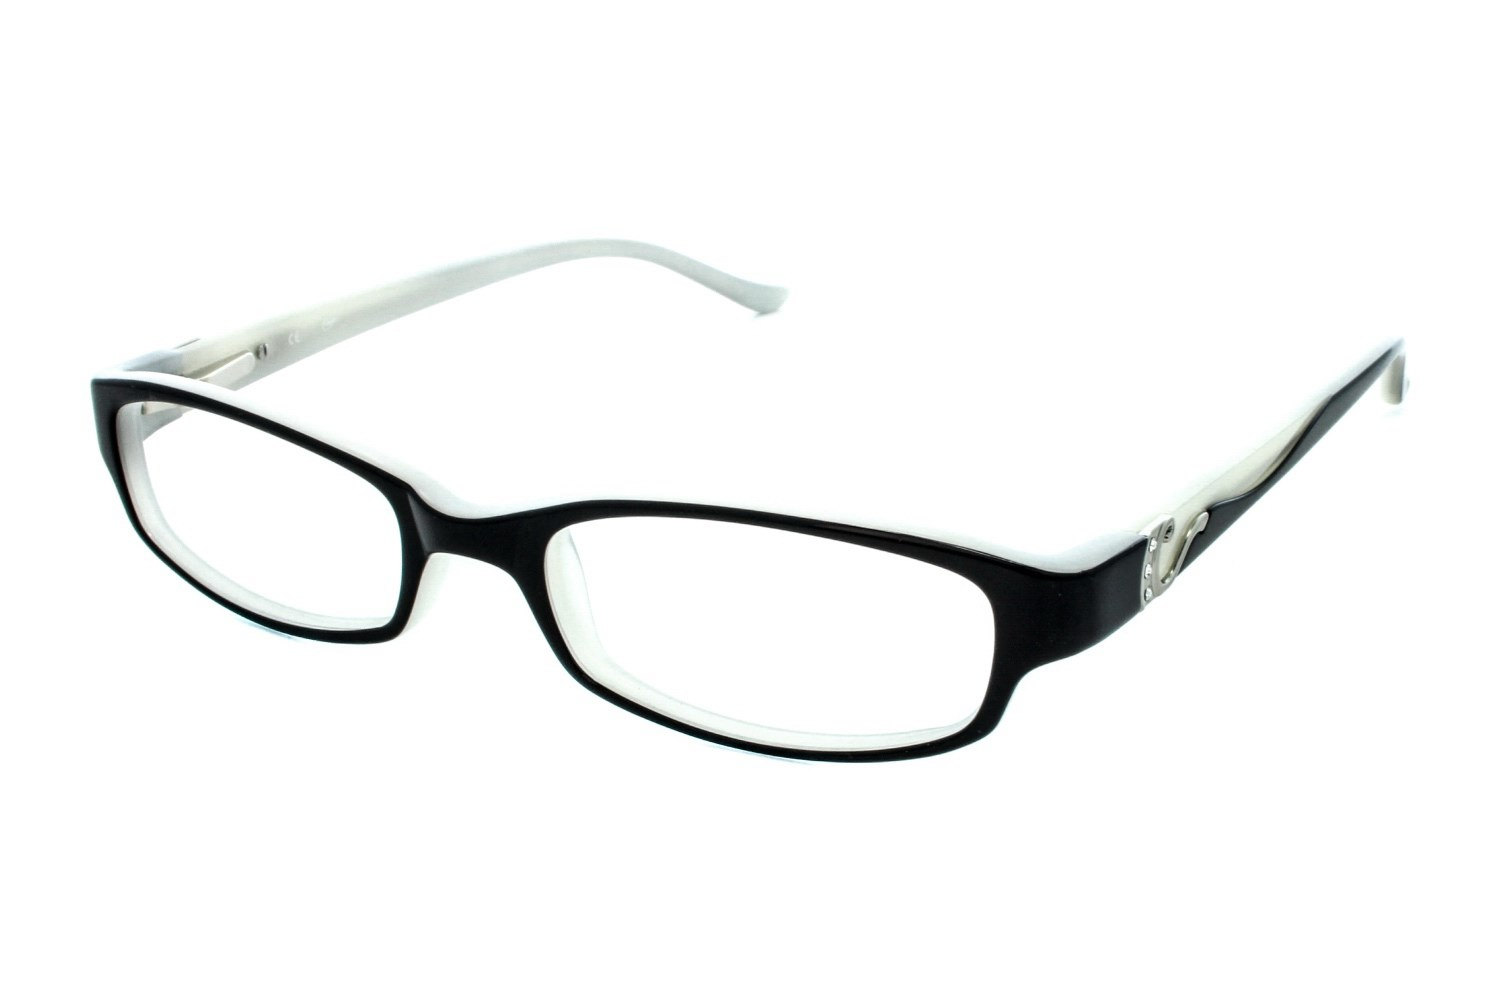 Candies C Fran Prescription Eyeglasses Frames